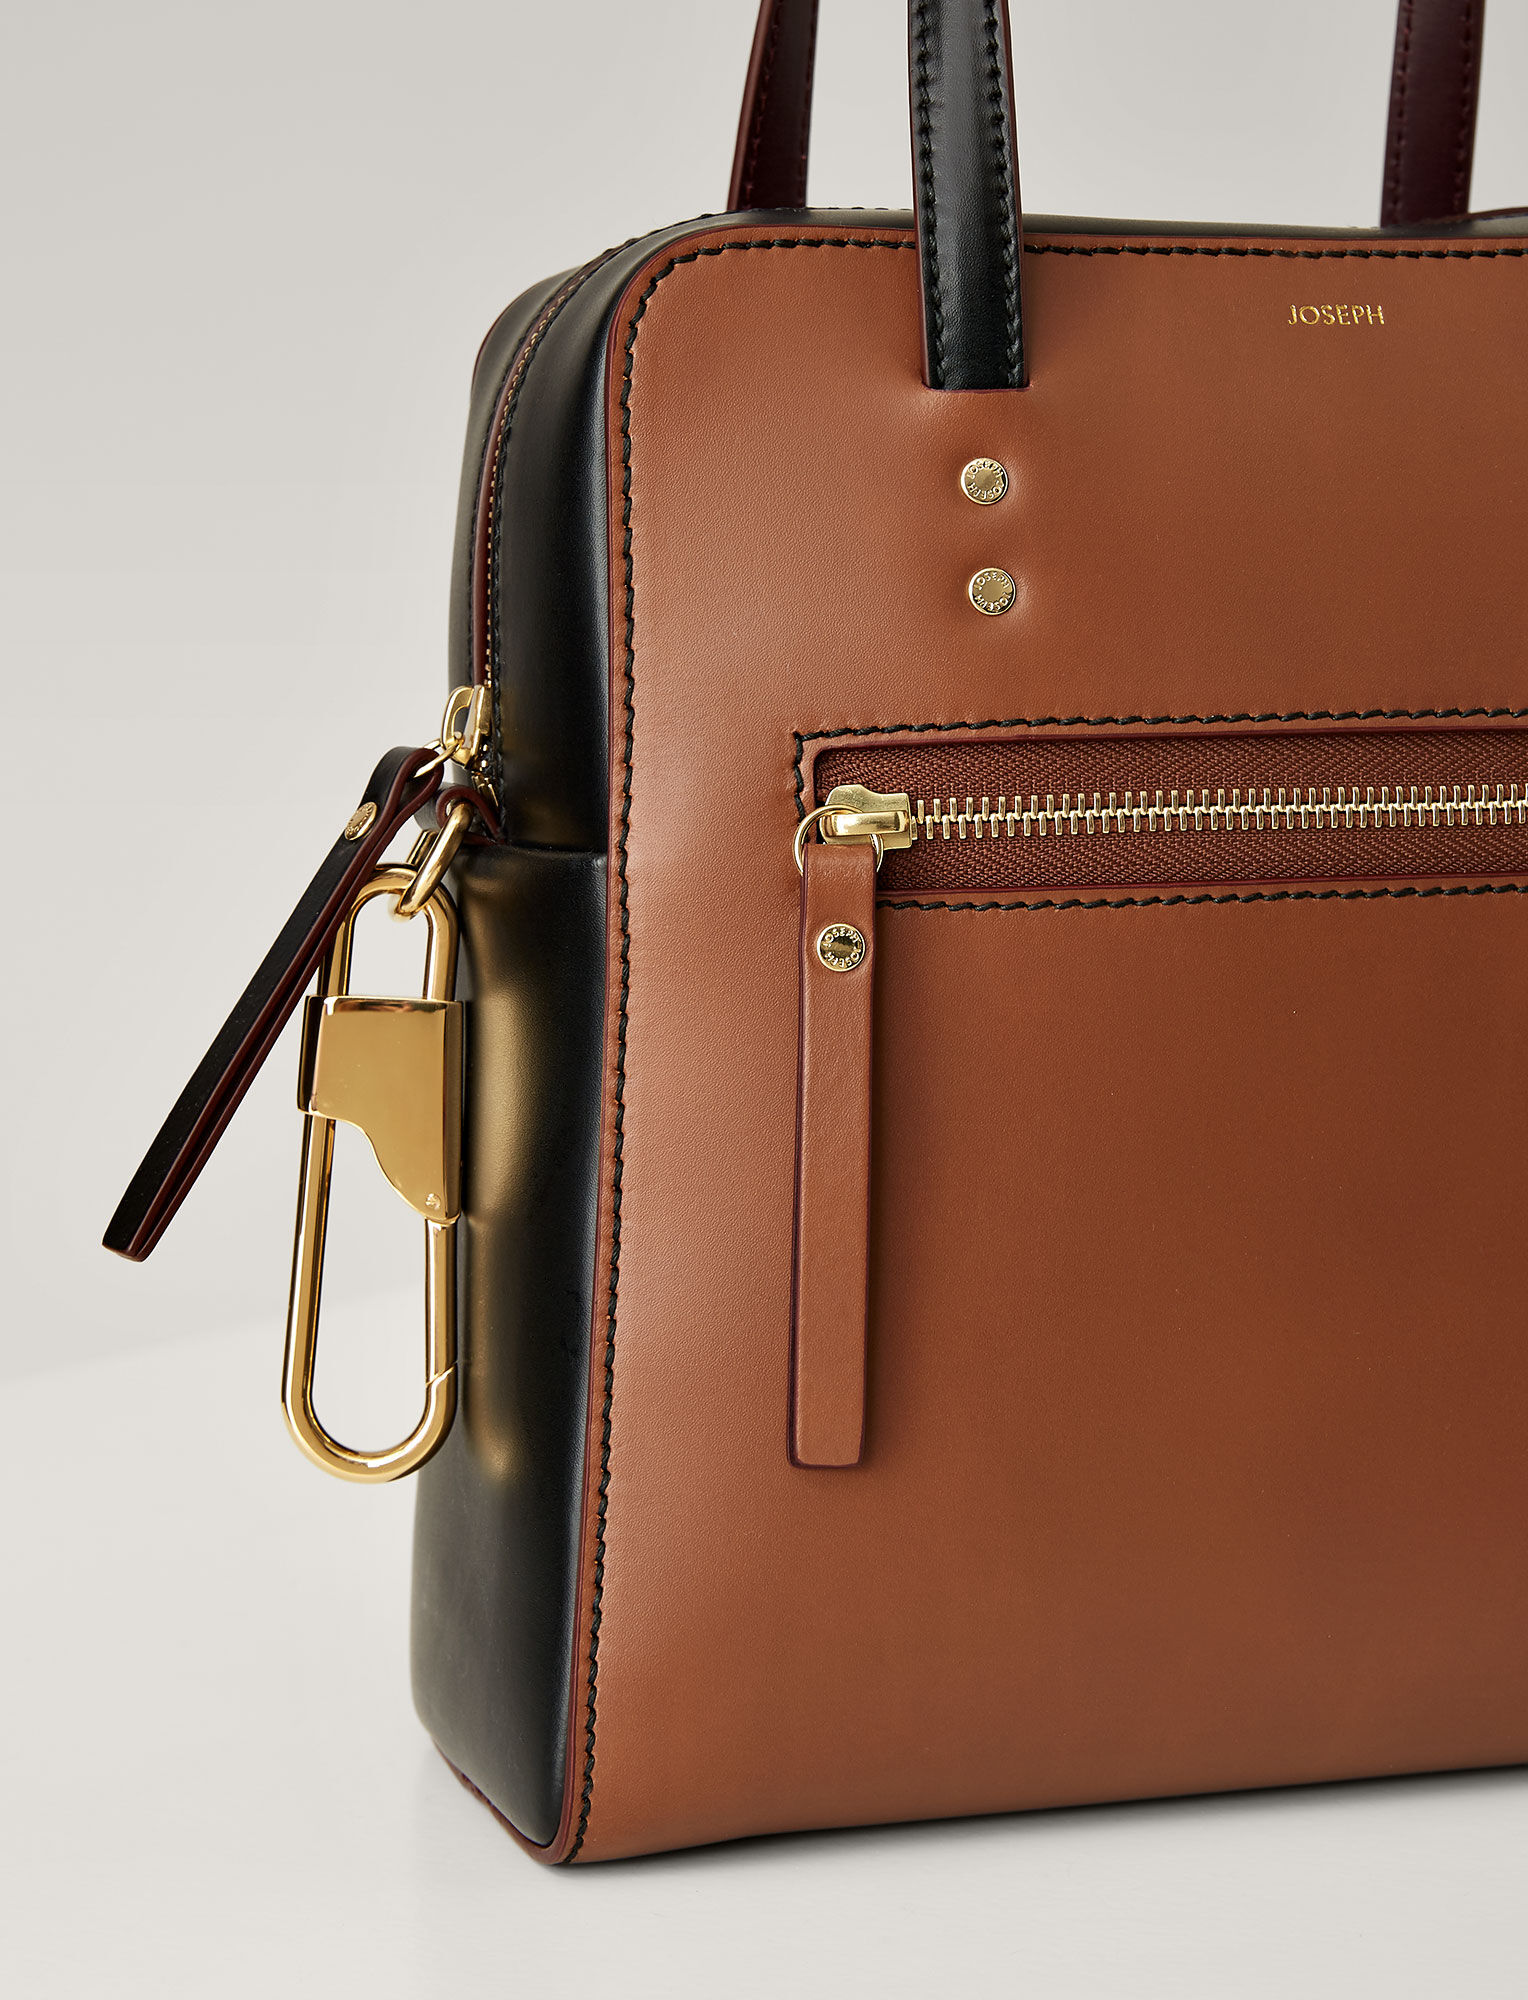 Joseph, Leather Ryder 25 Bag, in SADDLE